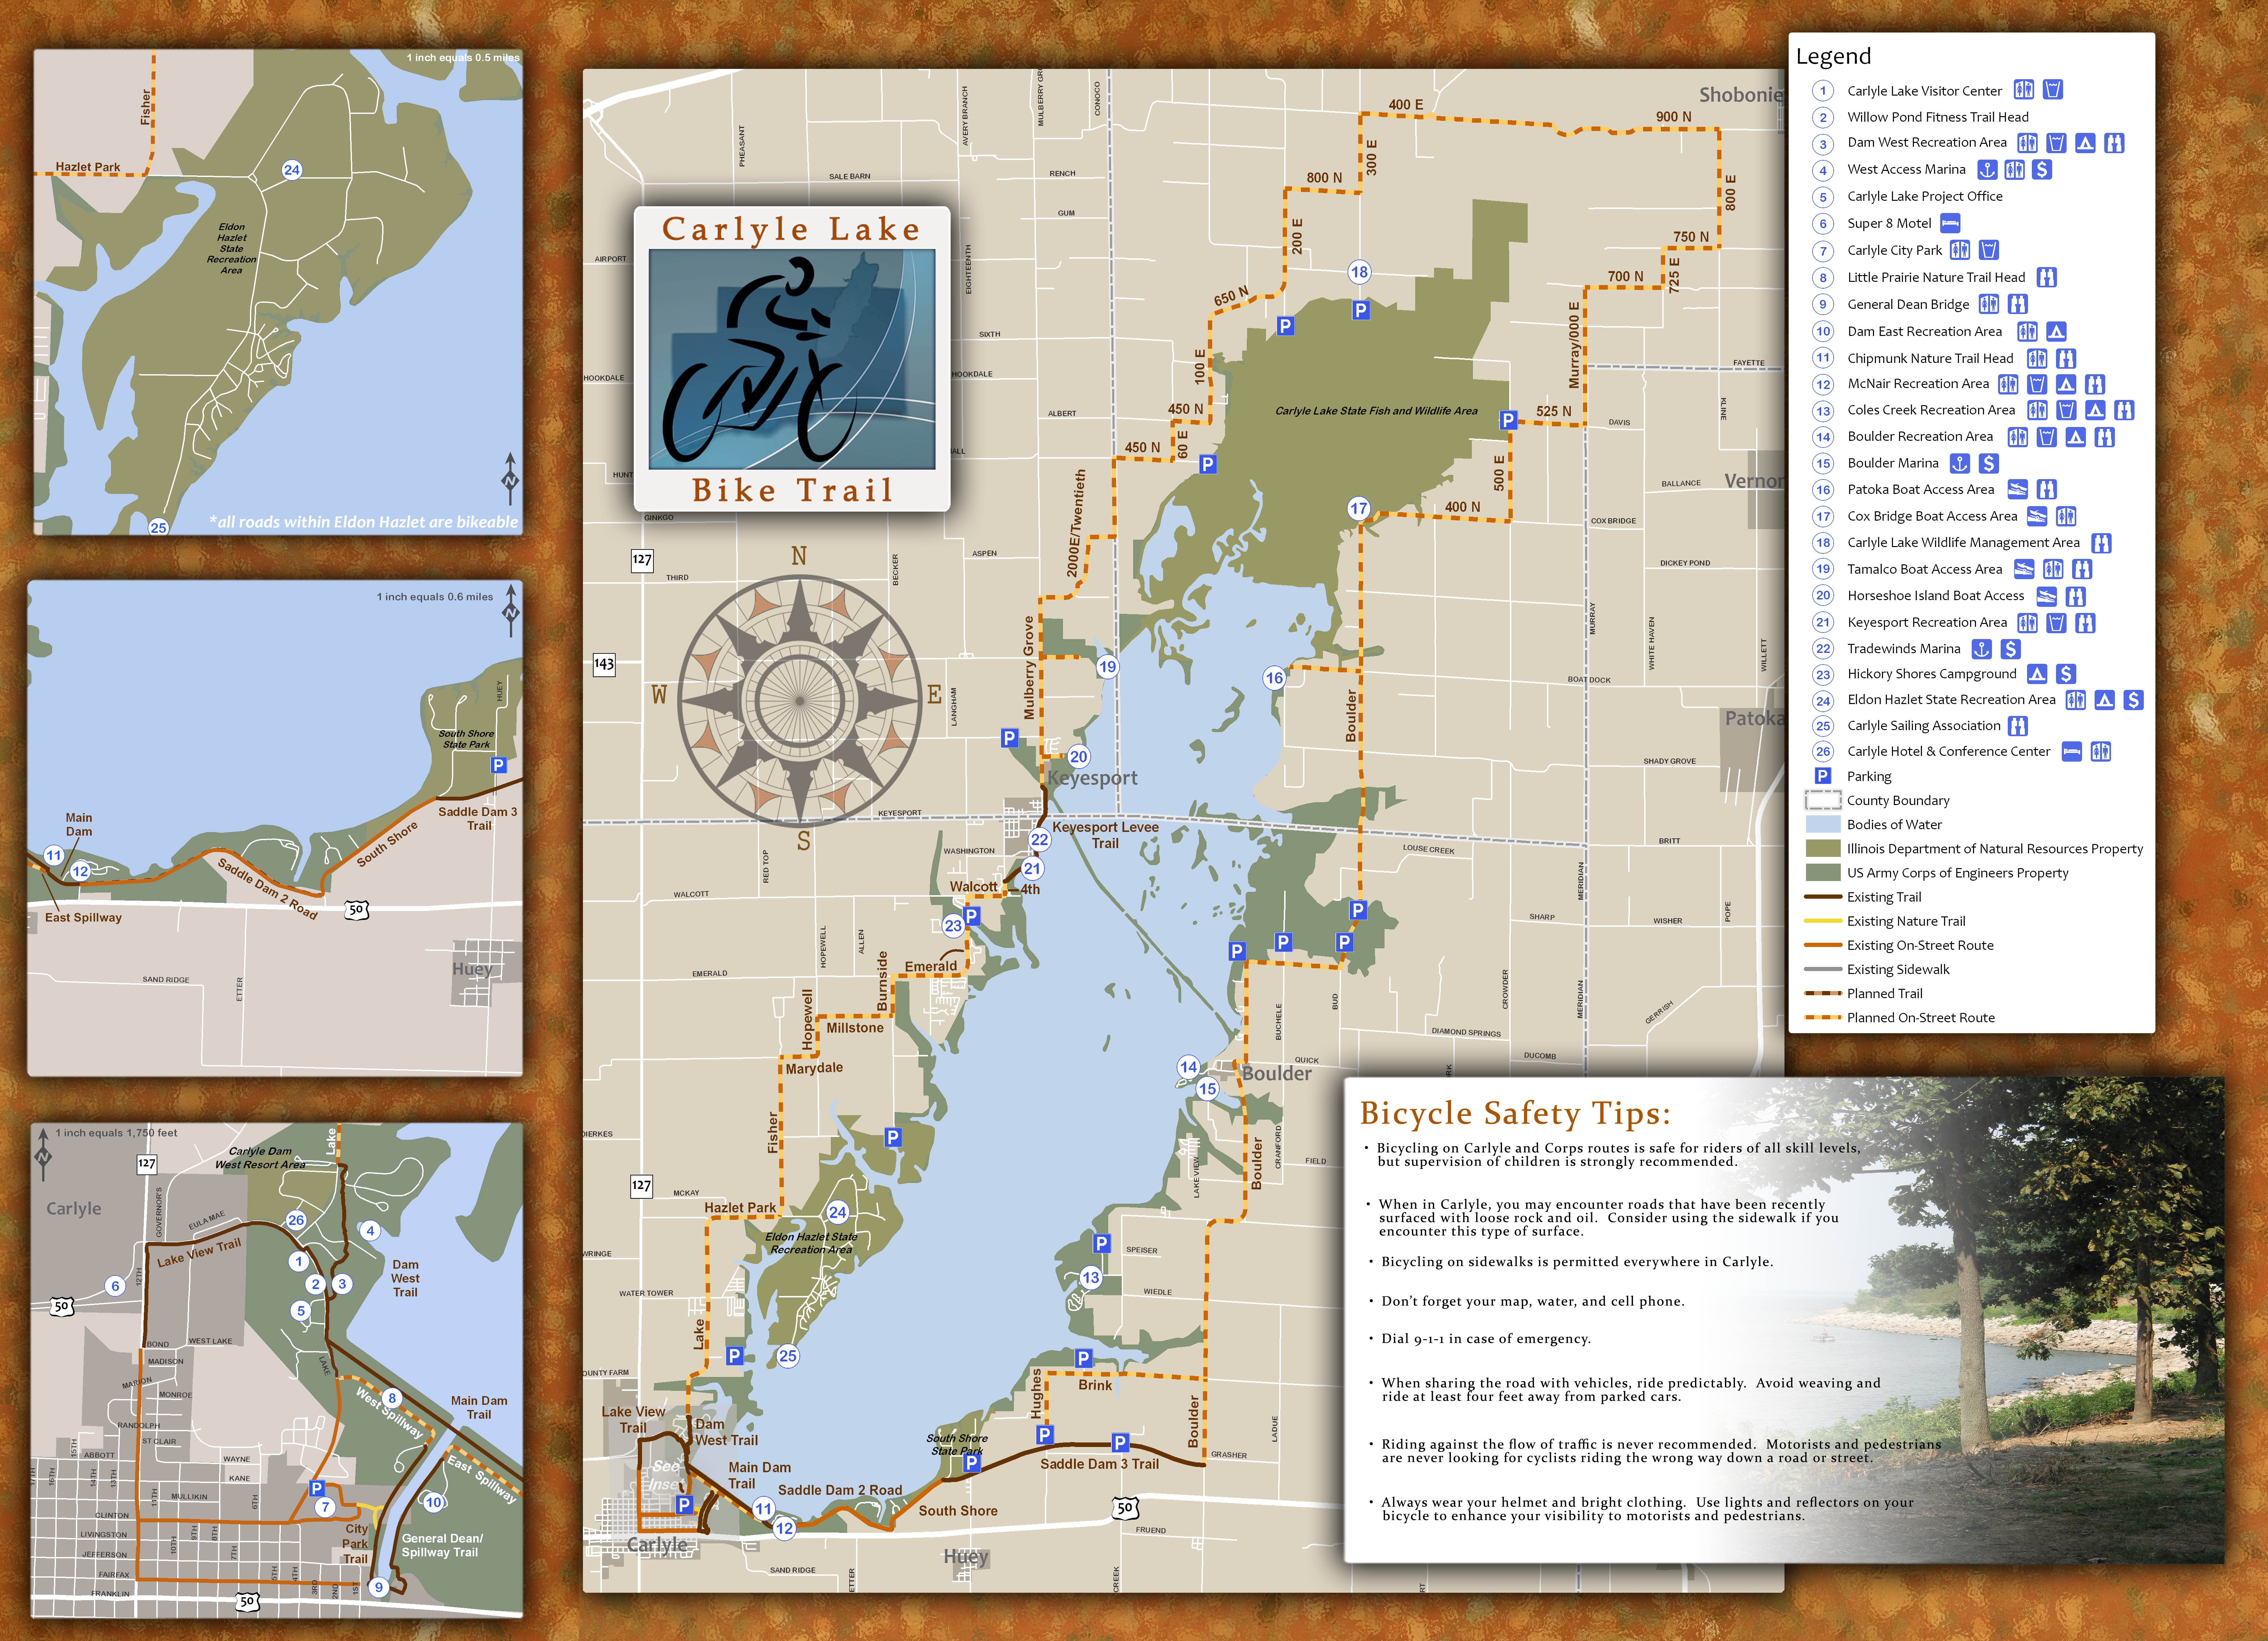 Rend Lake Illinois Map.St Louis District Missions Recreation Carlyle Lake Maps